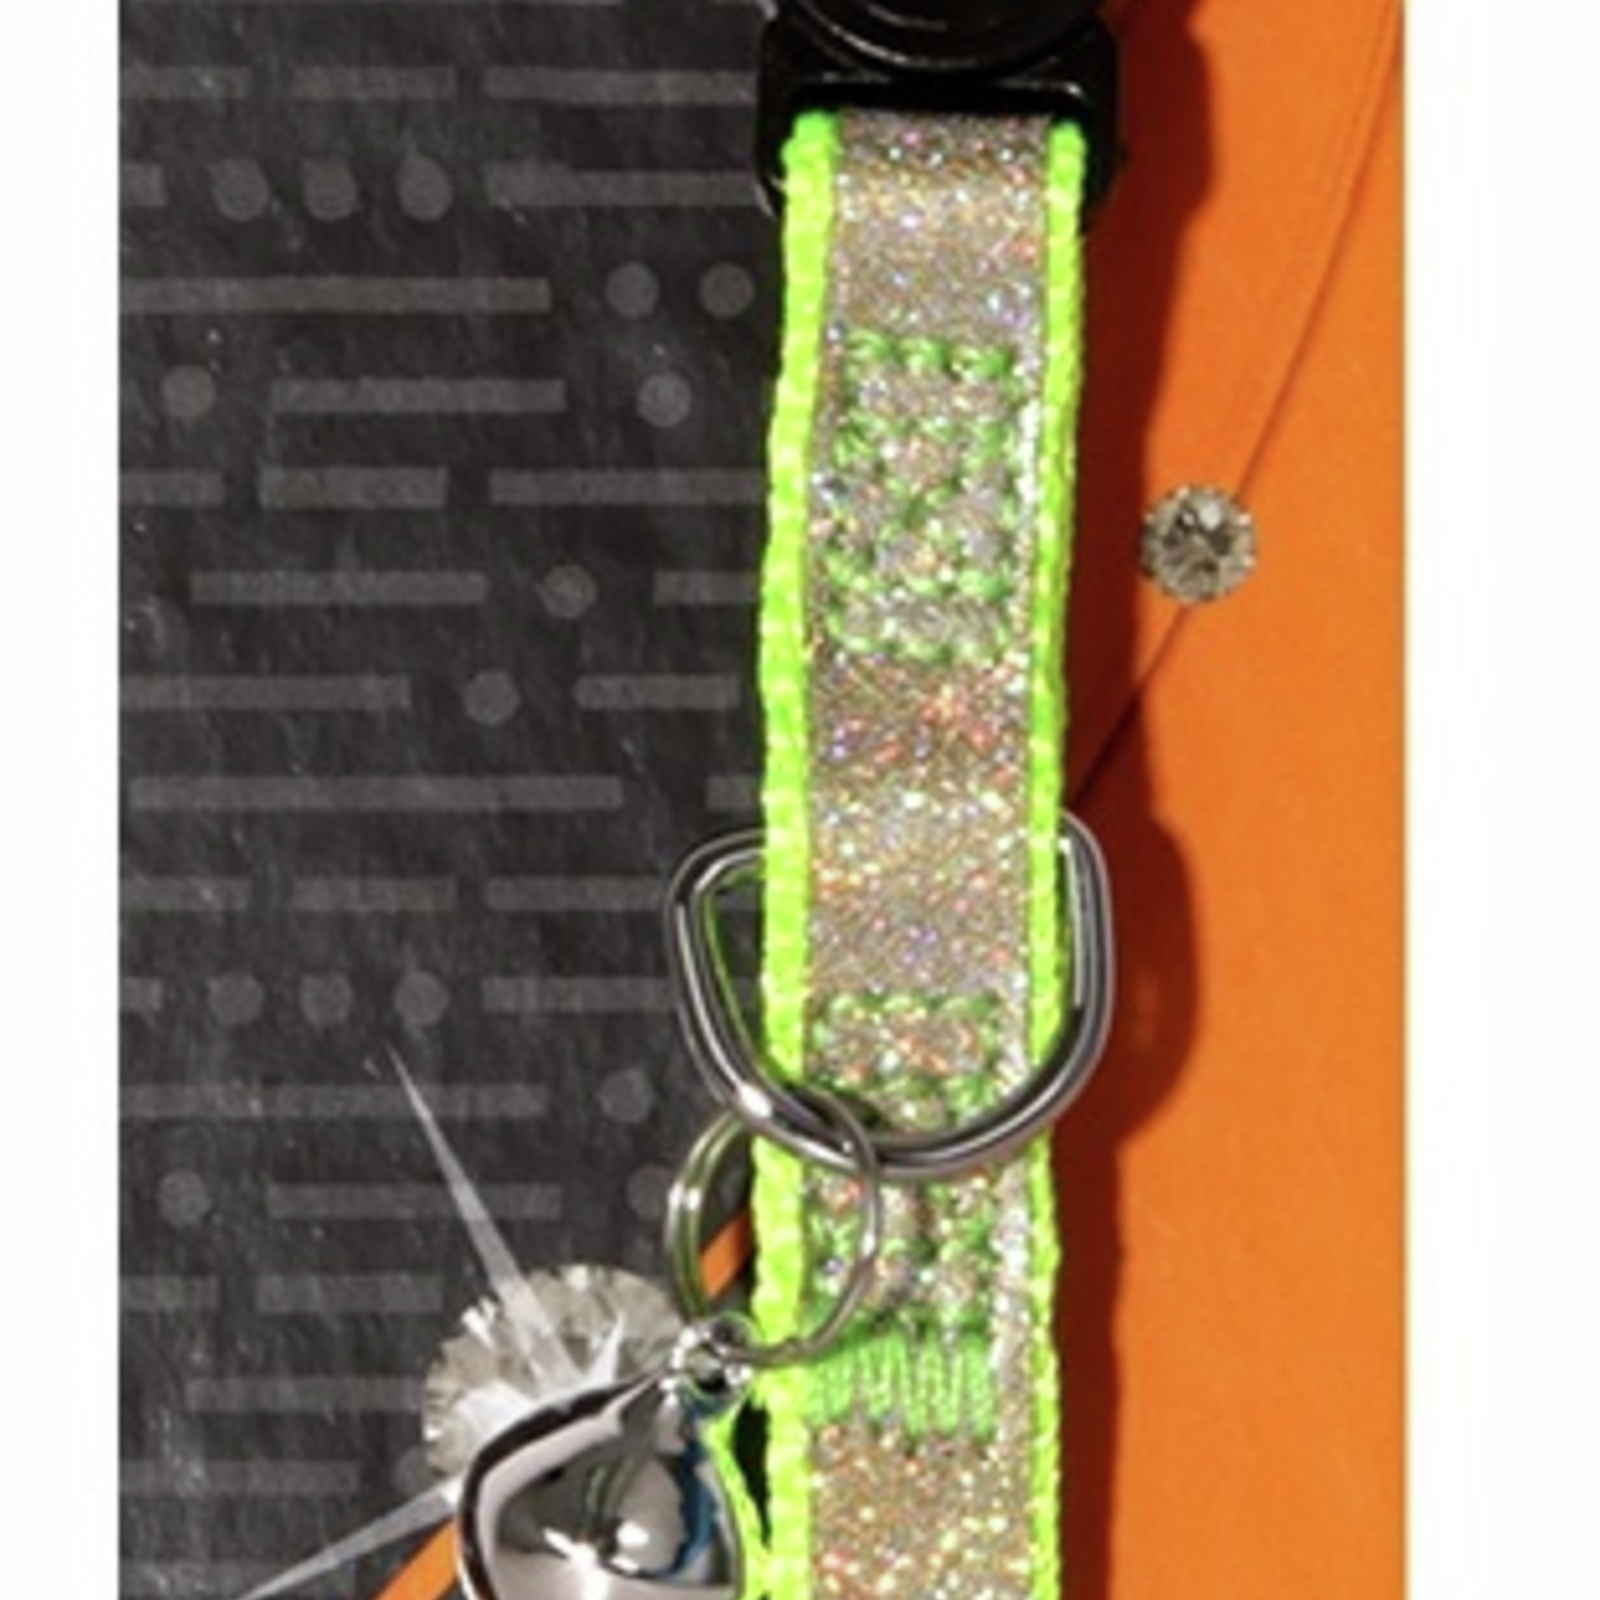 Cat Collar Green & Gold Bling Sparkle with Breakaway Clip - 30cm x 10mm (Pet One)